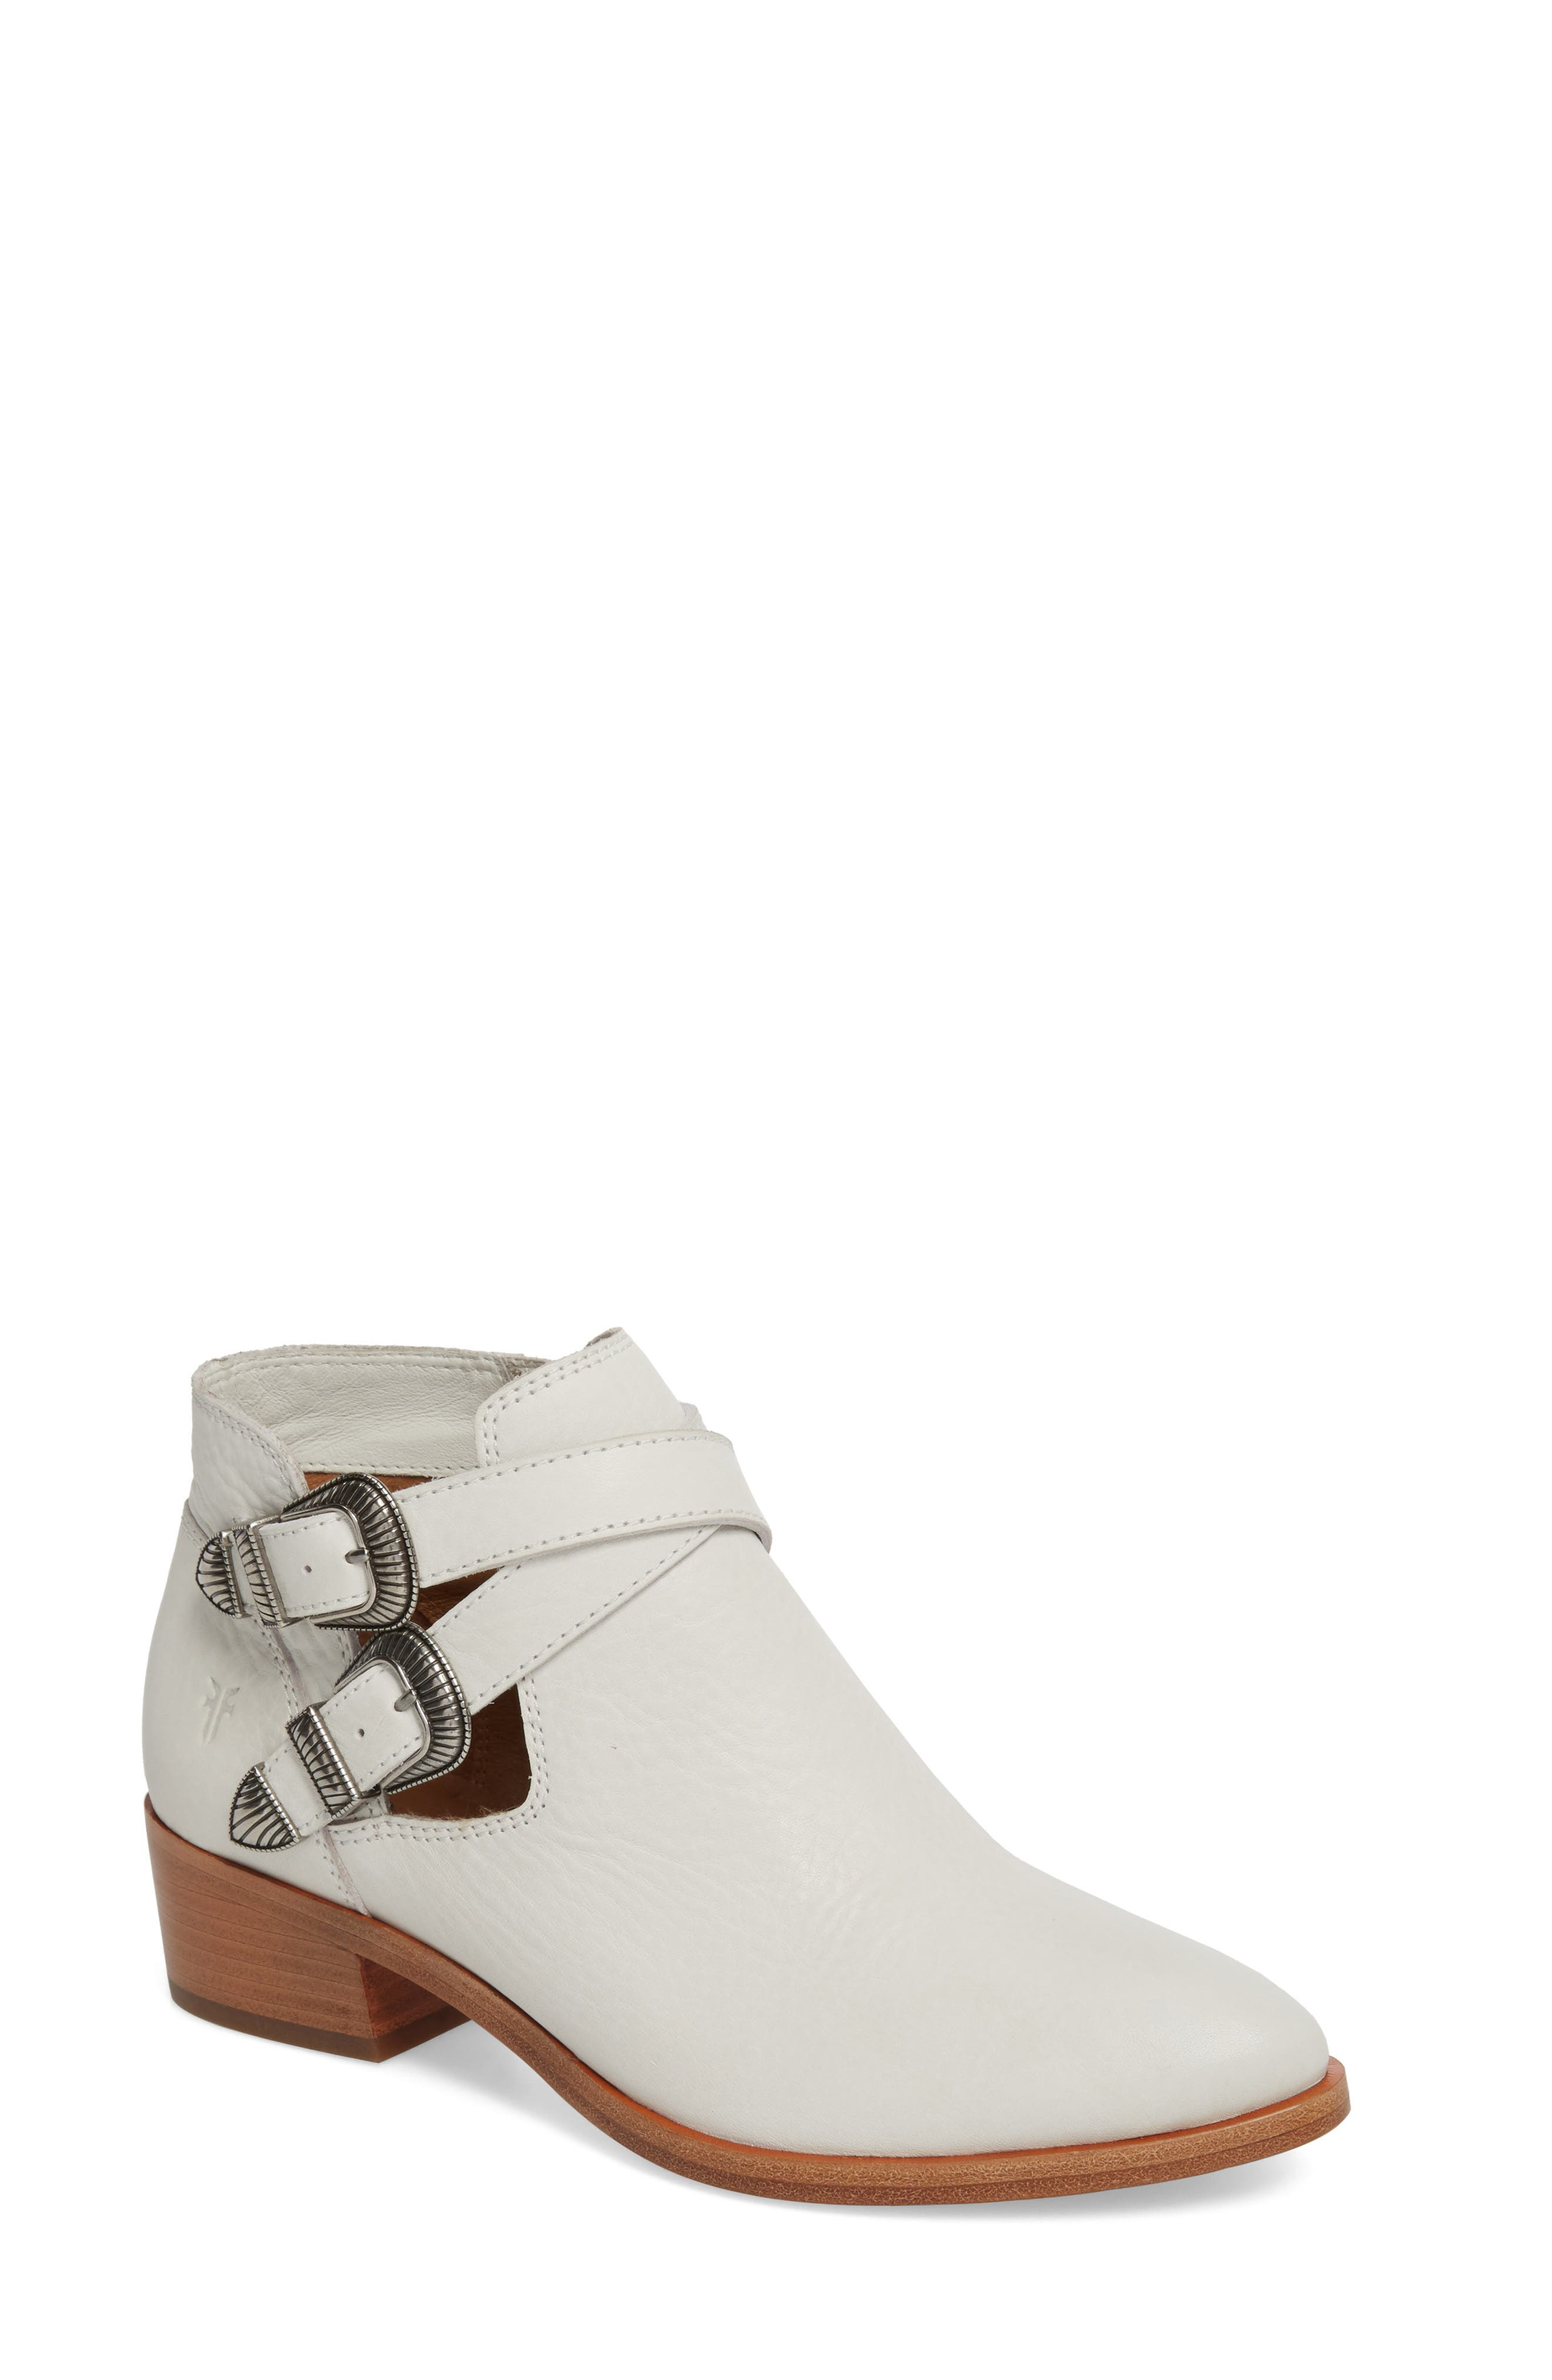 Ray Western Bootie,                         Main,                         color, WHITE/ WHITE LEATHER